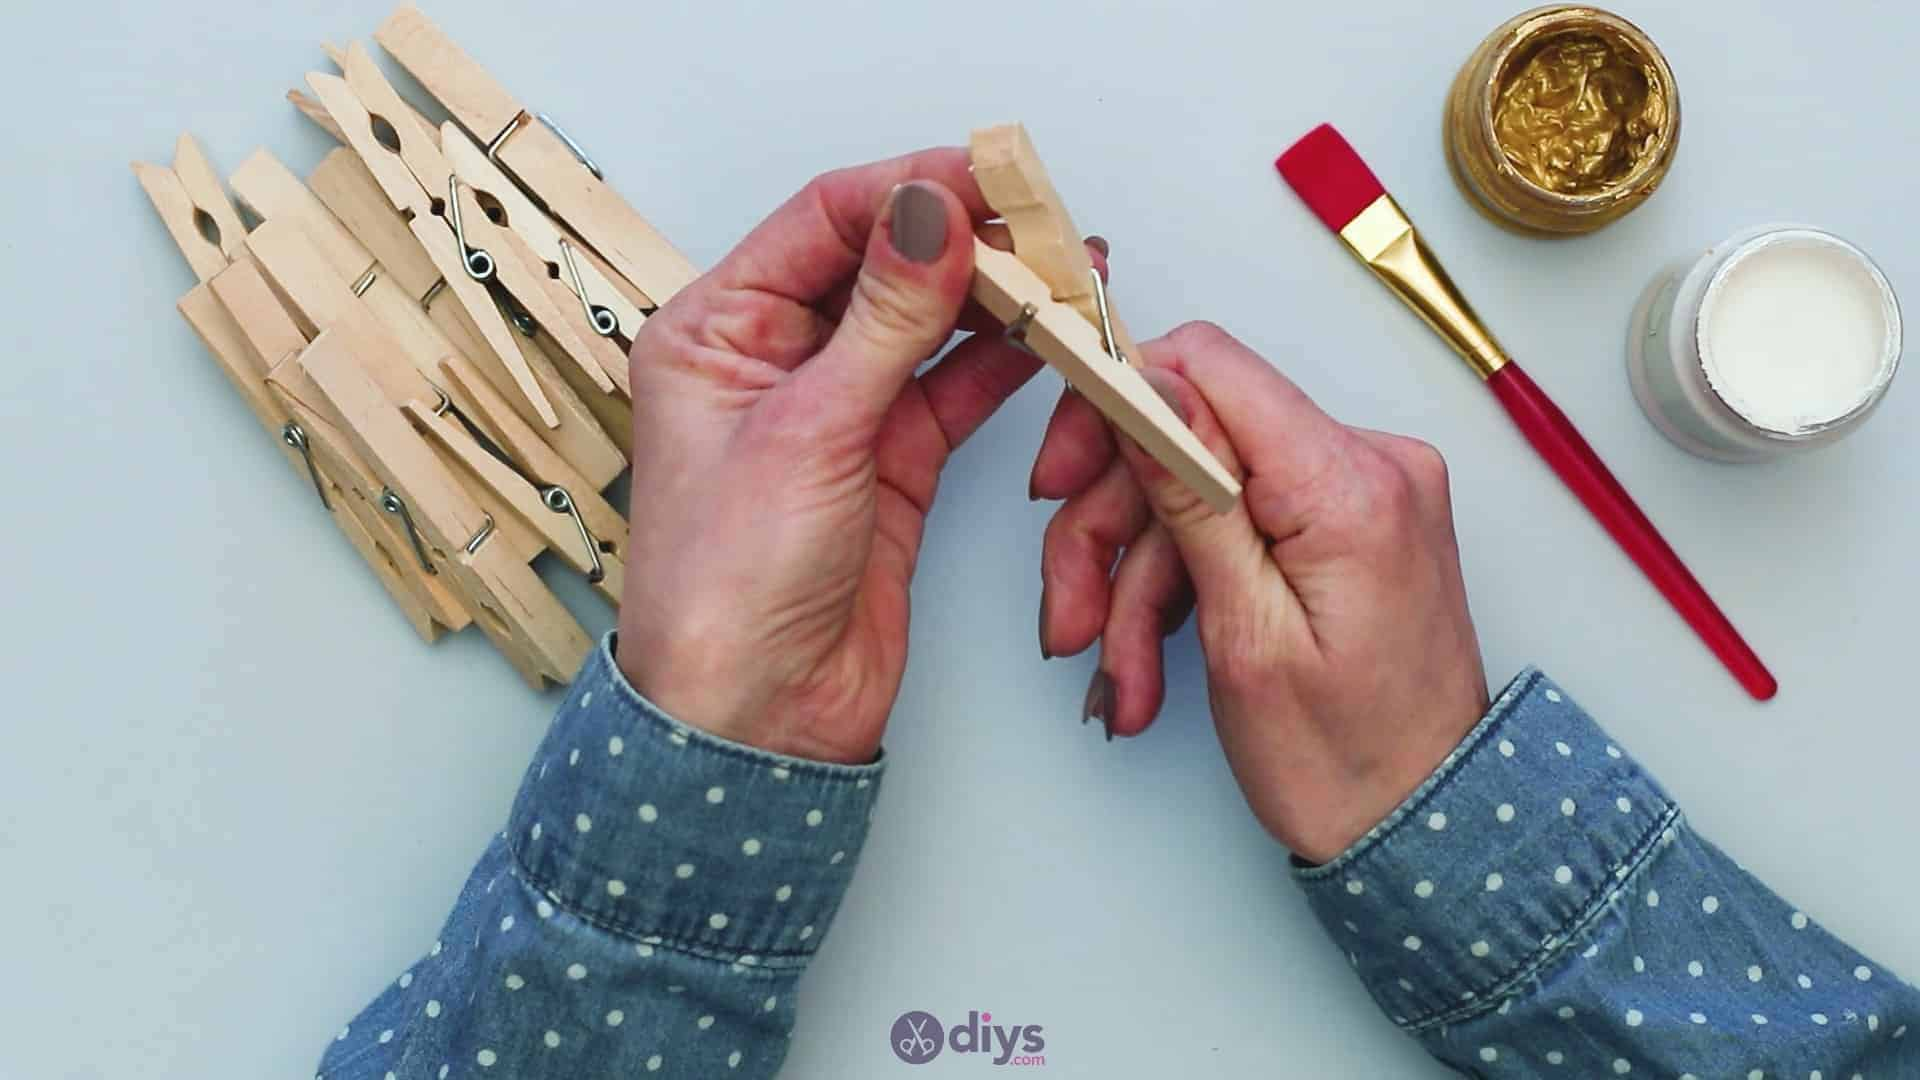 Diy clothespin art step 1